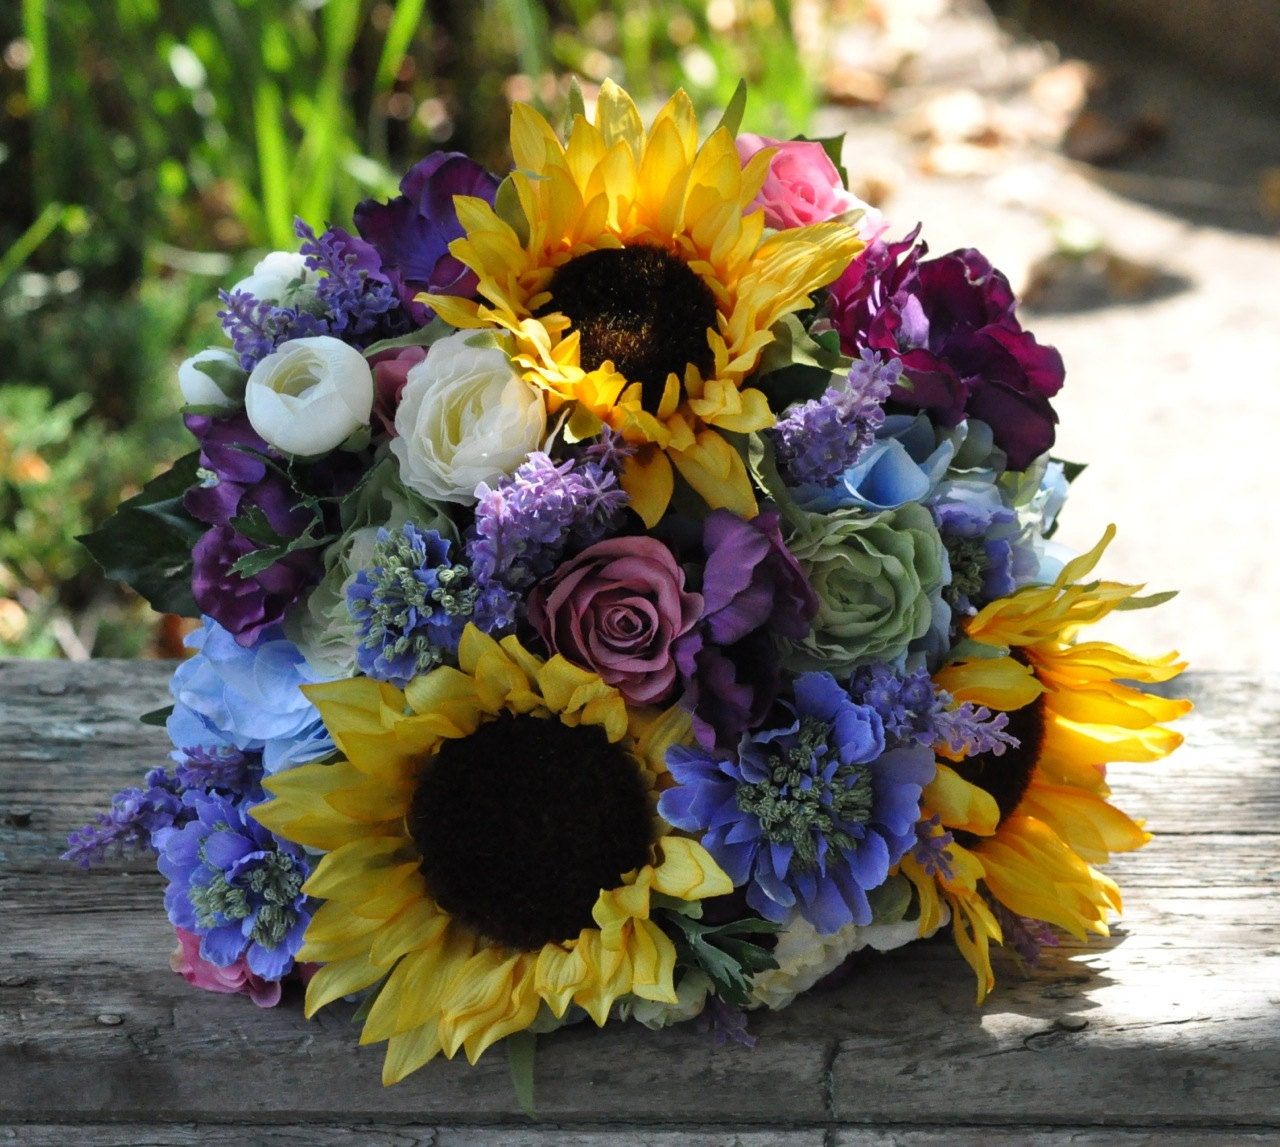 Blue Hydrangea Wedding Flowers: Fall Wedding Bouquet Made Of Silk Flowers Sunflowers Blue